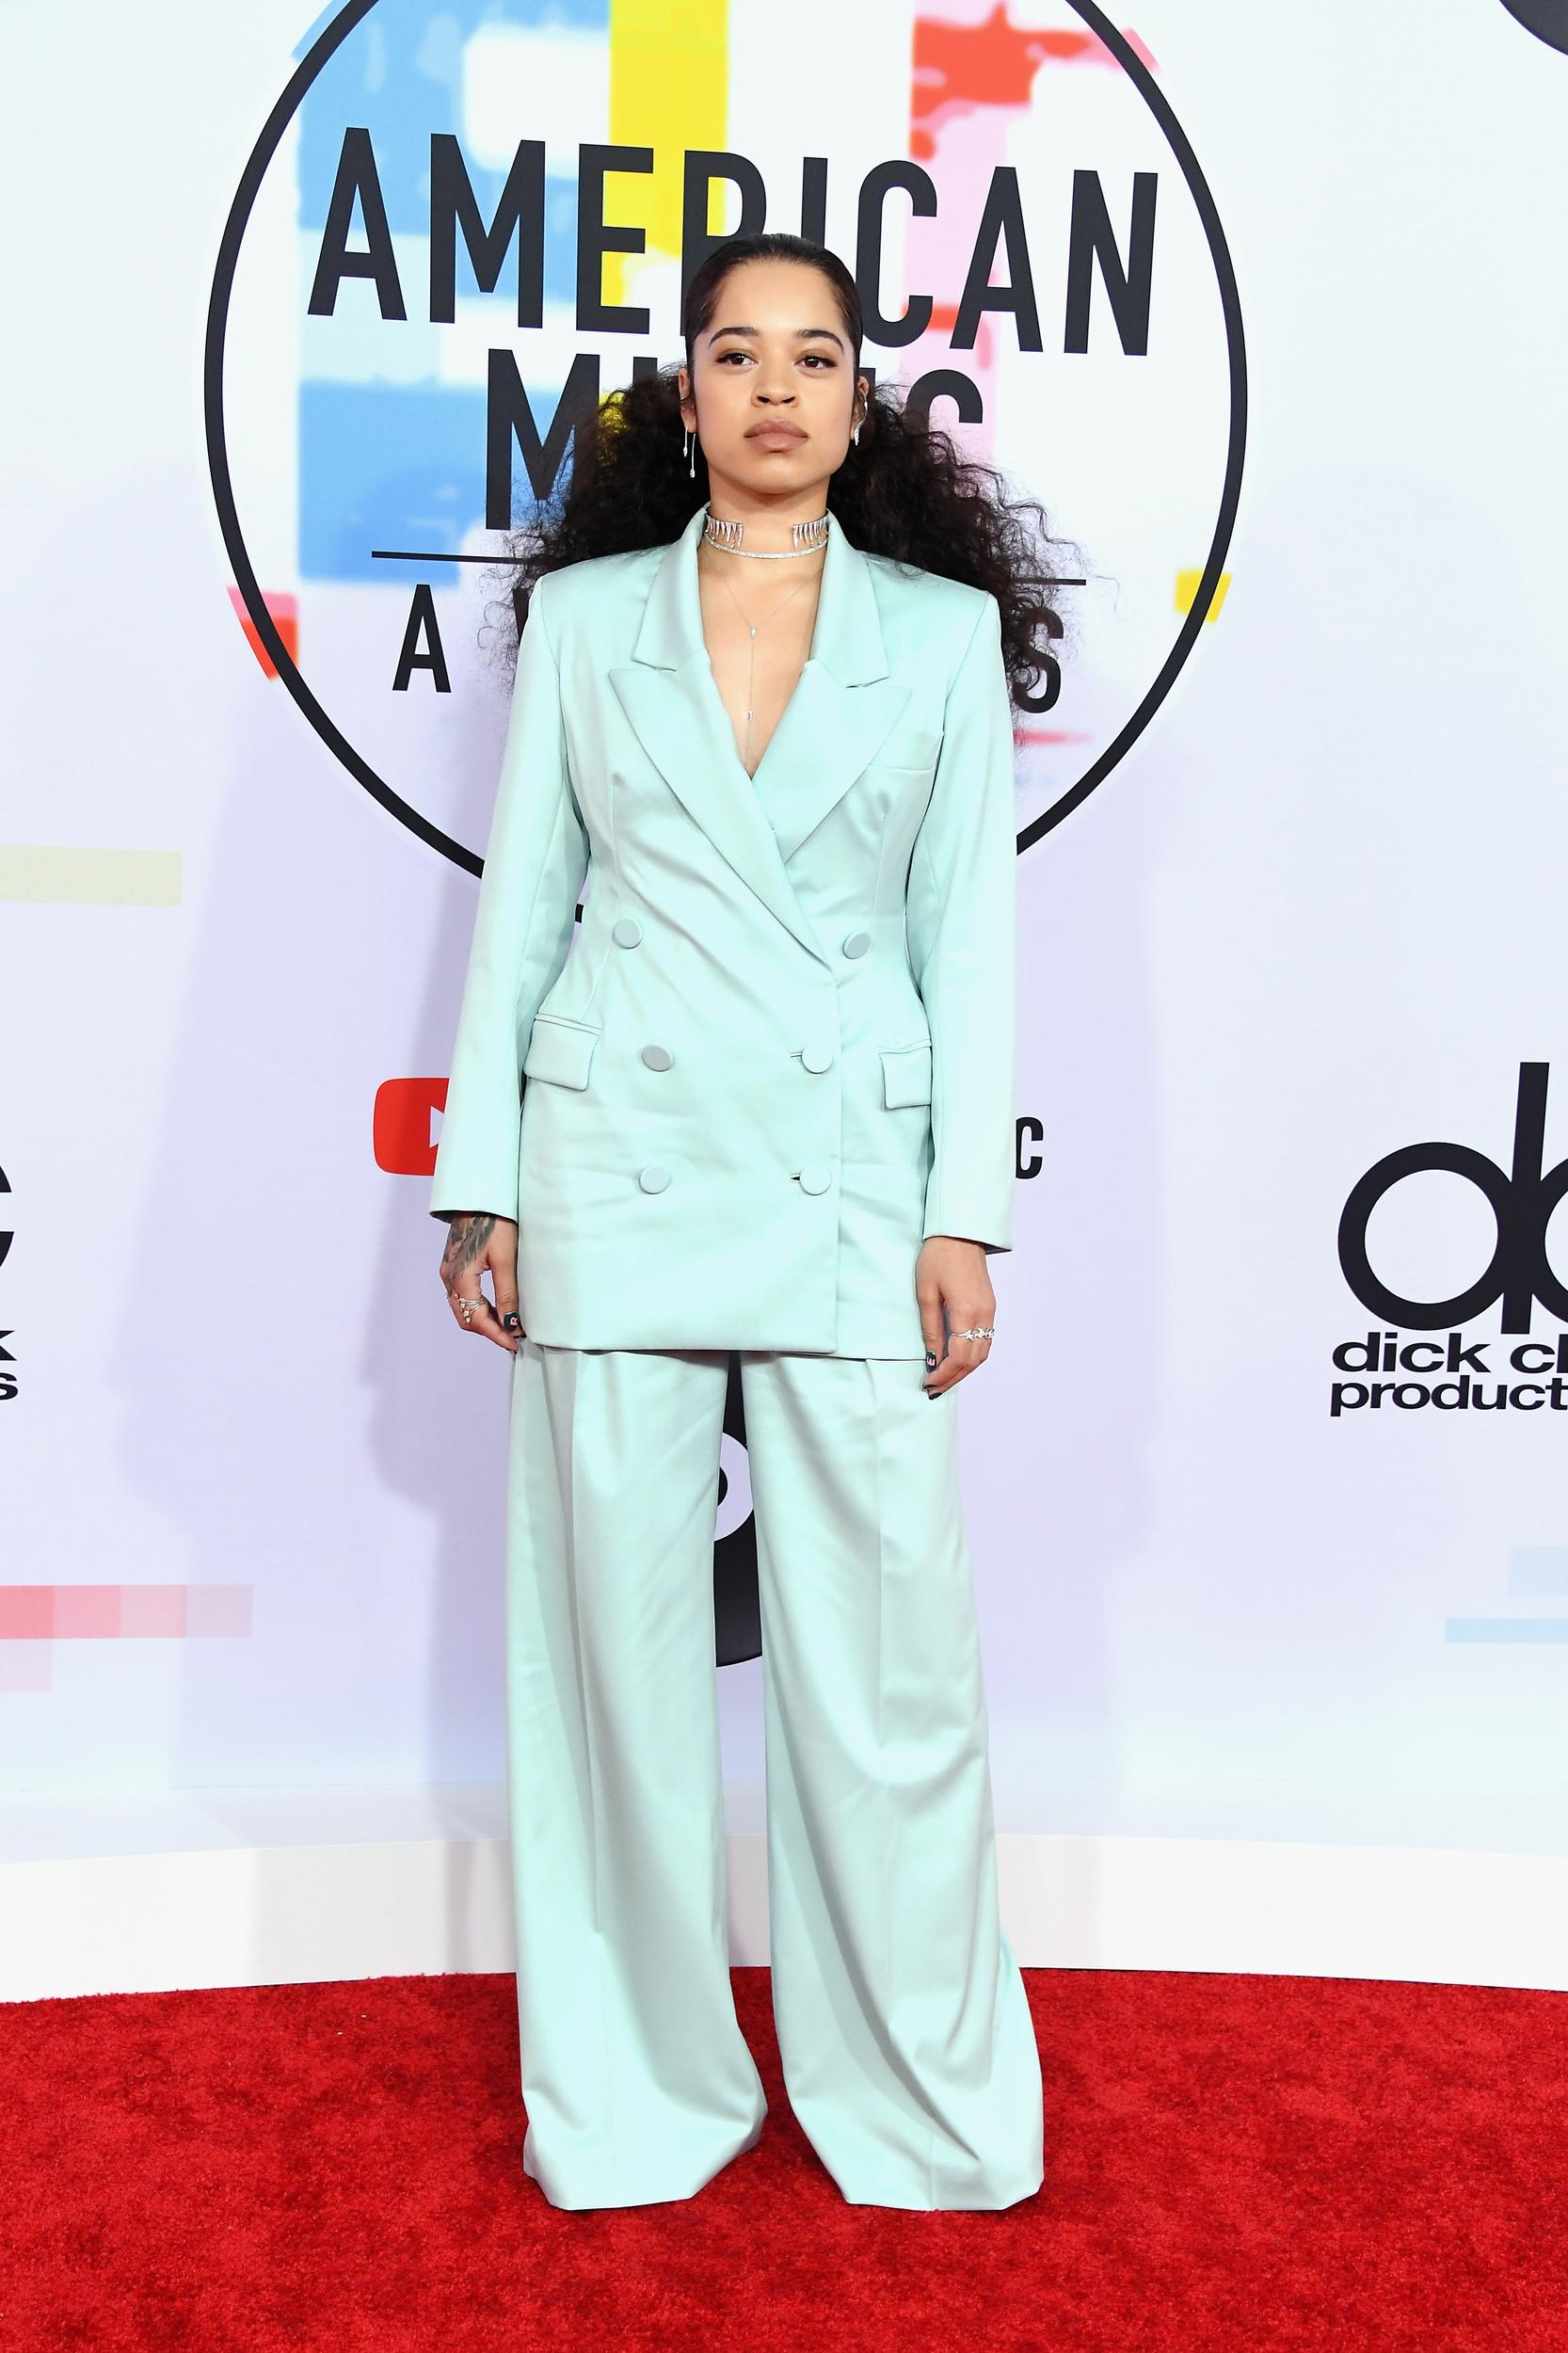 LOS ANGELES, CA - OCTOBER 09: Ella Mai attends the 2018 American Music Awards at Microsoft Theater on October 9, 2018 in Los Angeles, California. (Photo by Steve Granitz/WireImage)